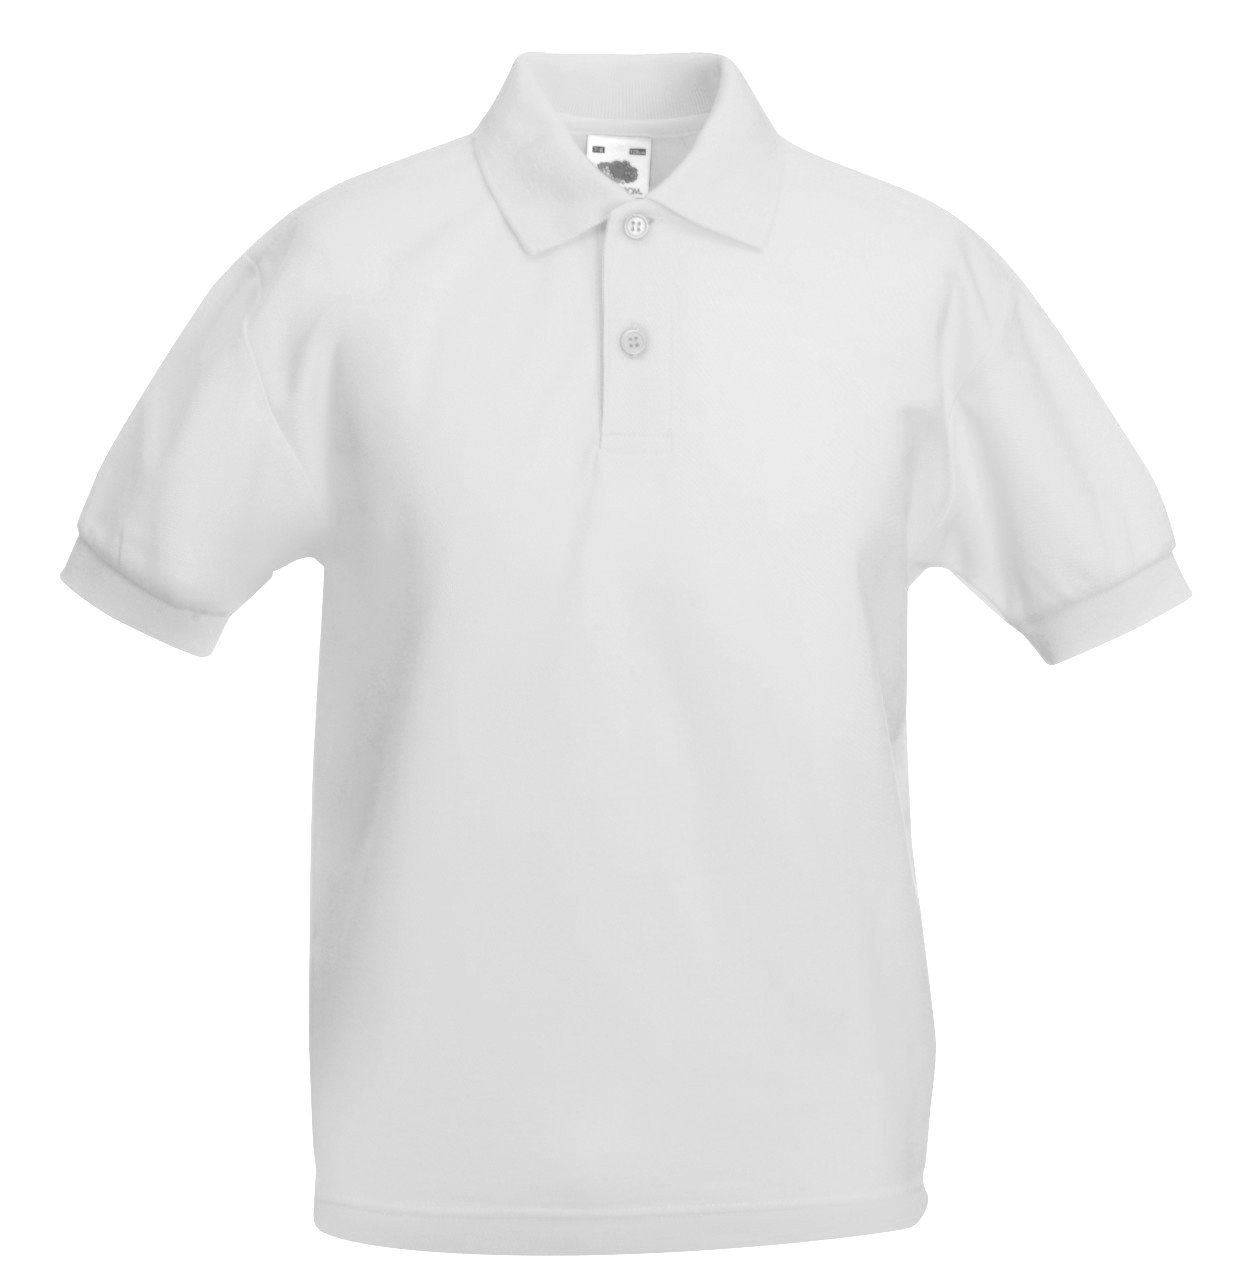 School Polo Shirts White